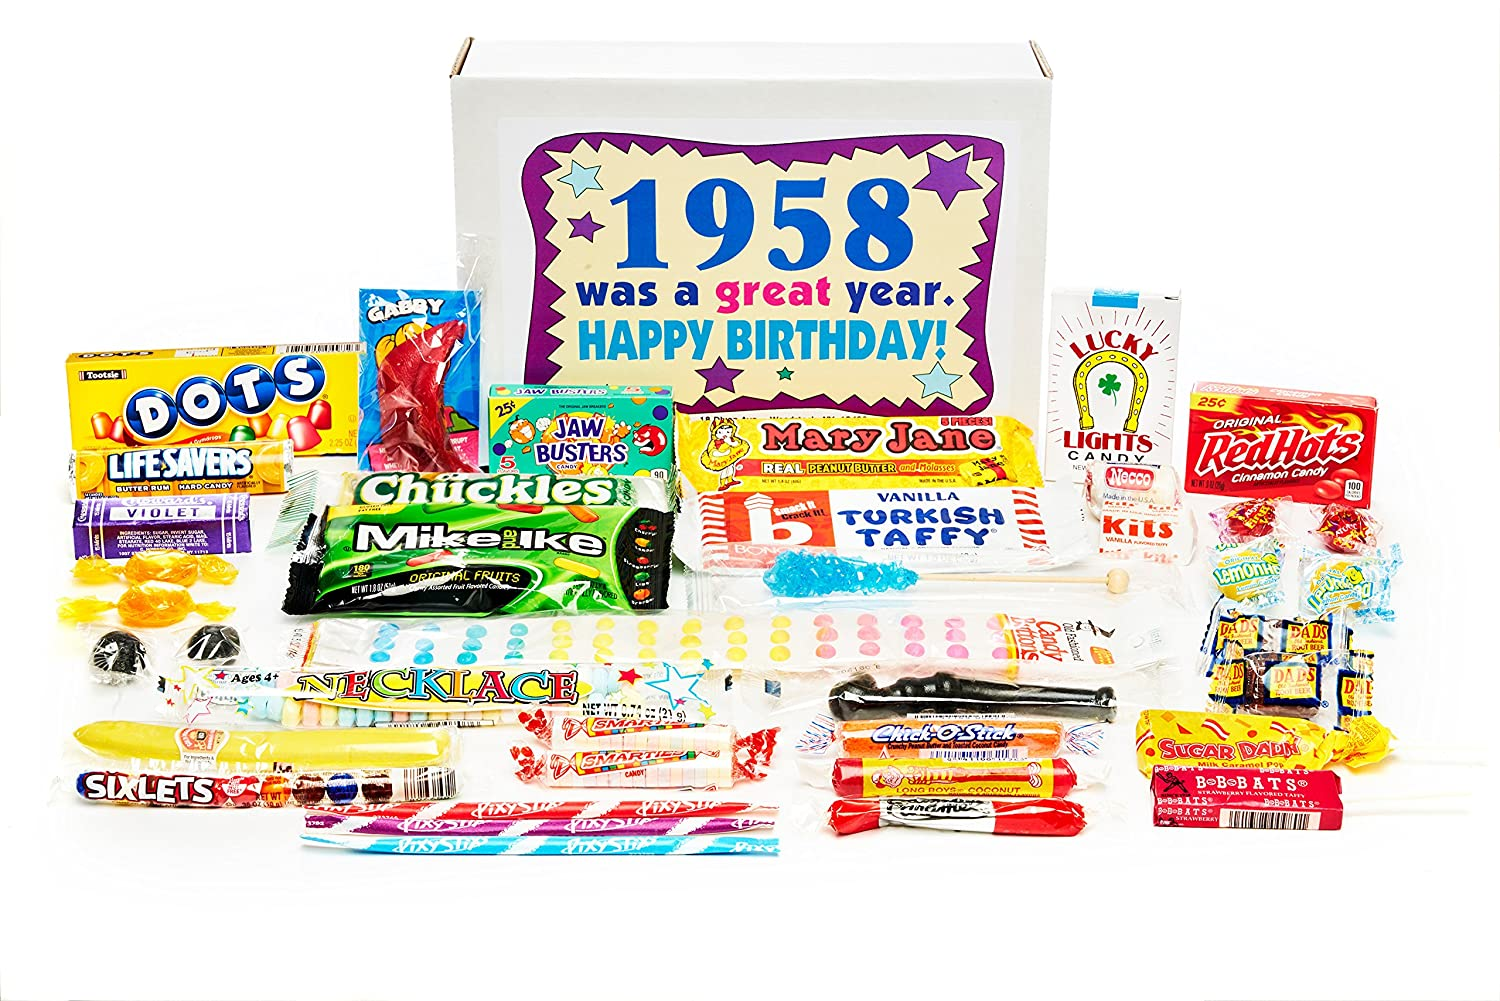 Woodstock Candy 1958 60th Birthday Gift Box Nostalgic Retro Mix From Childhood For 60 Year Old Man Or Woman Born Jr